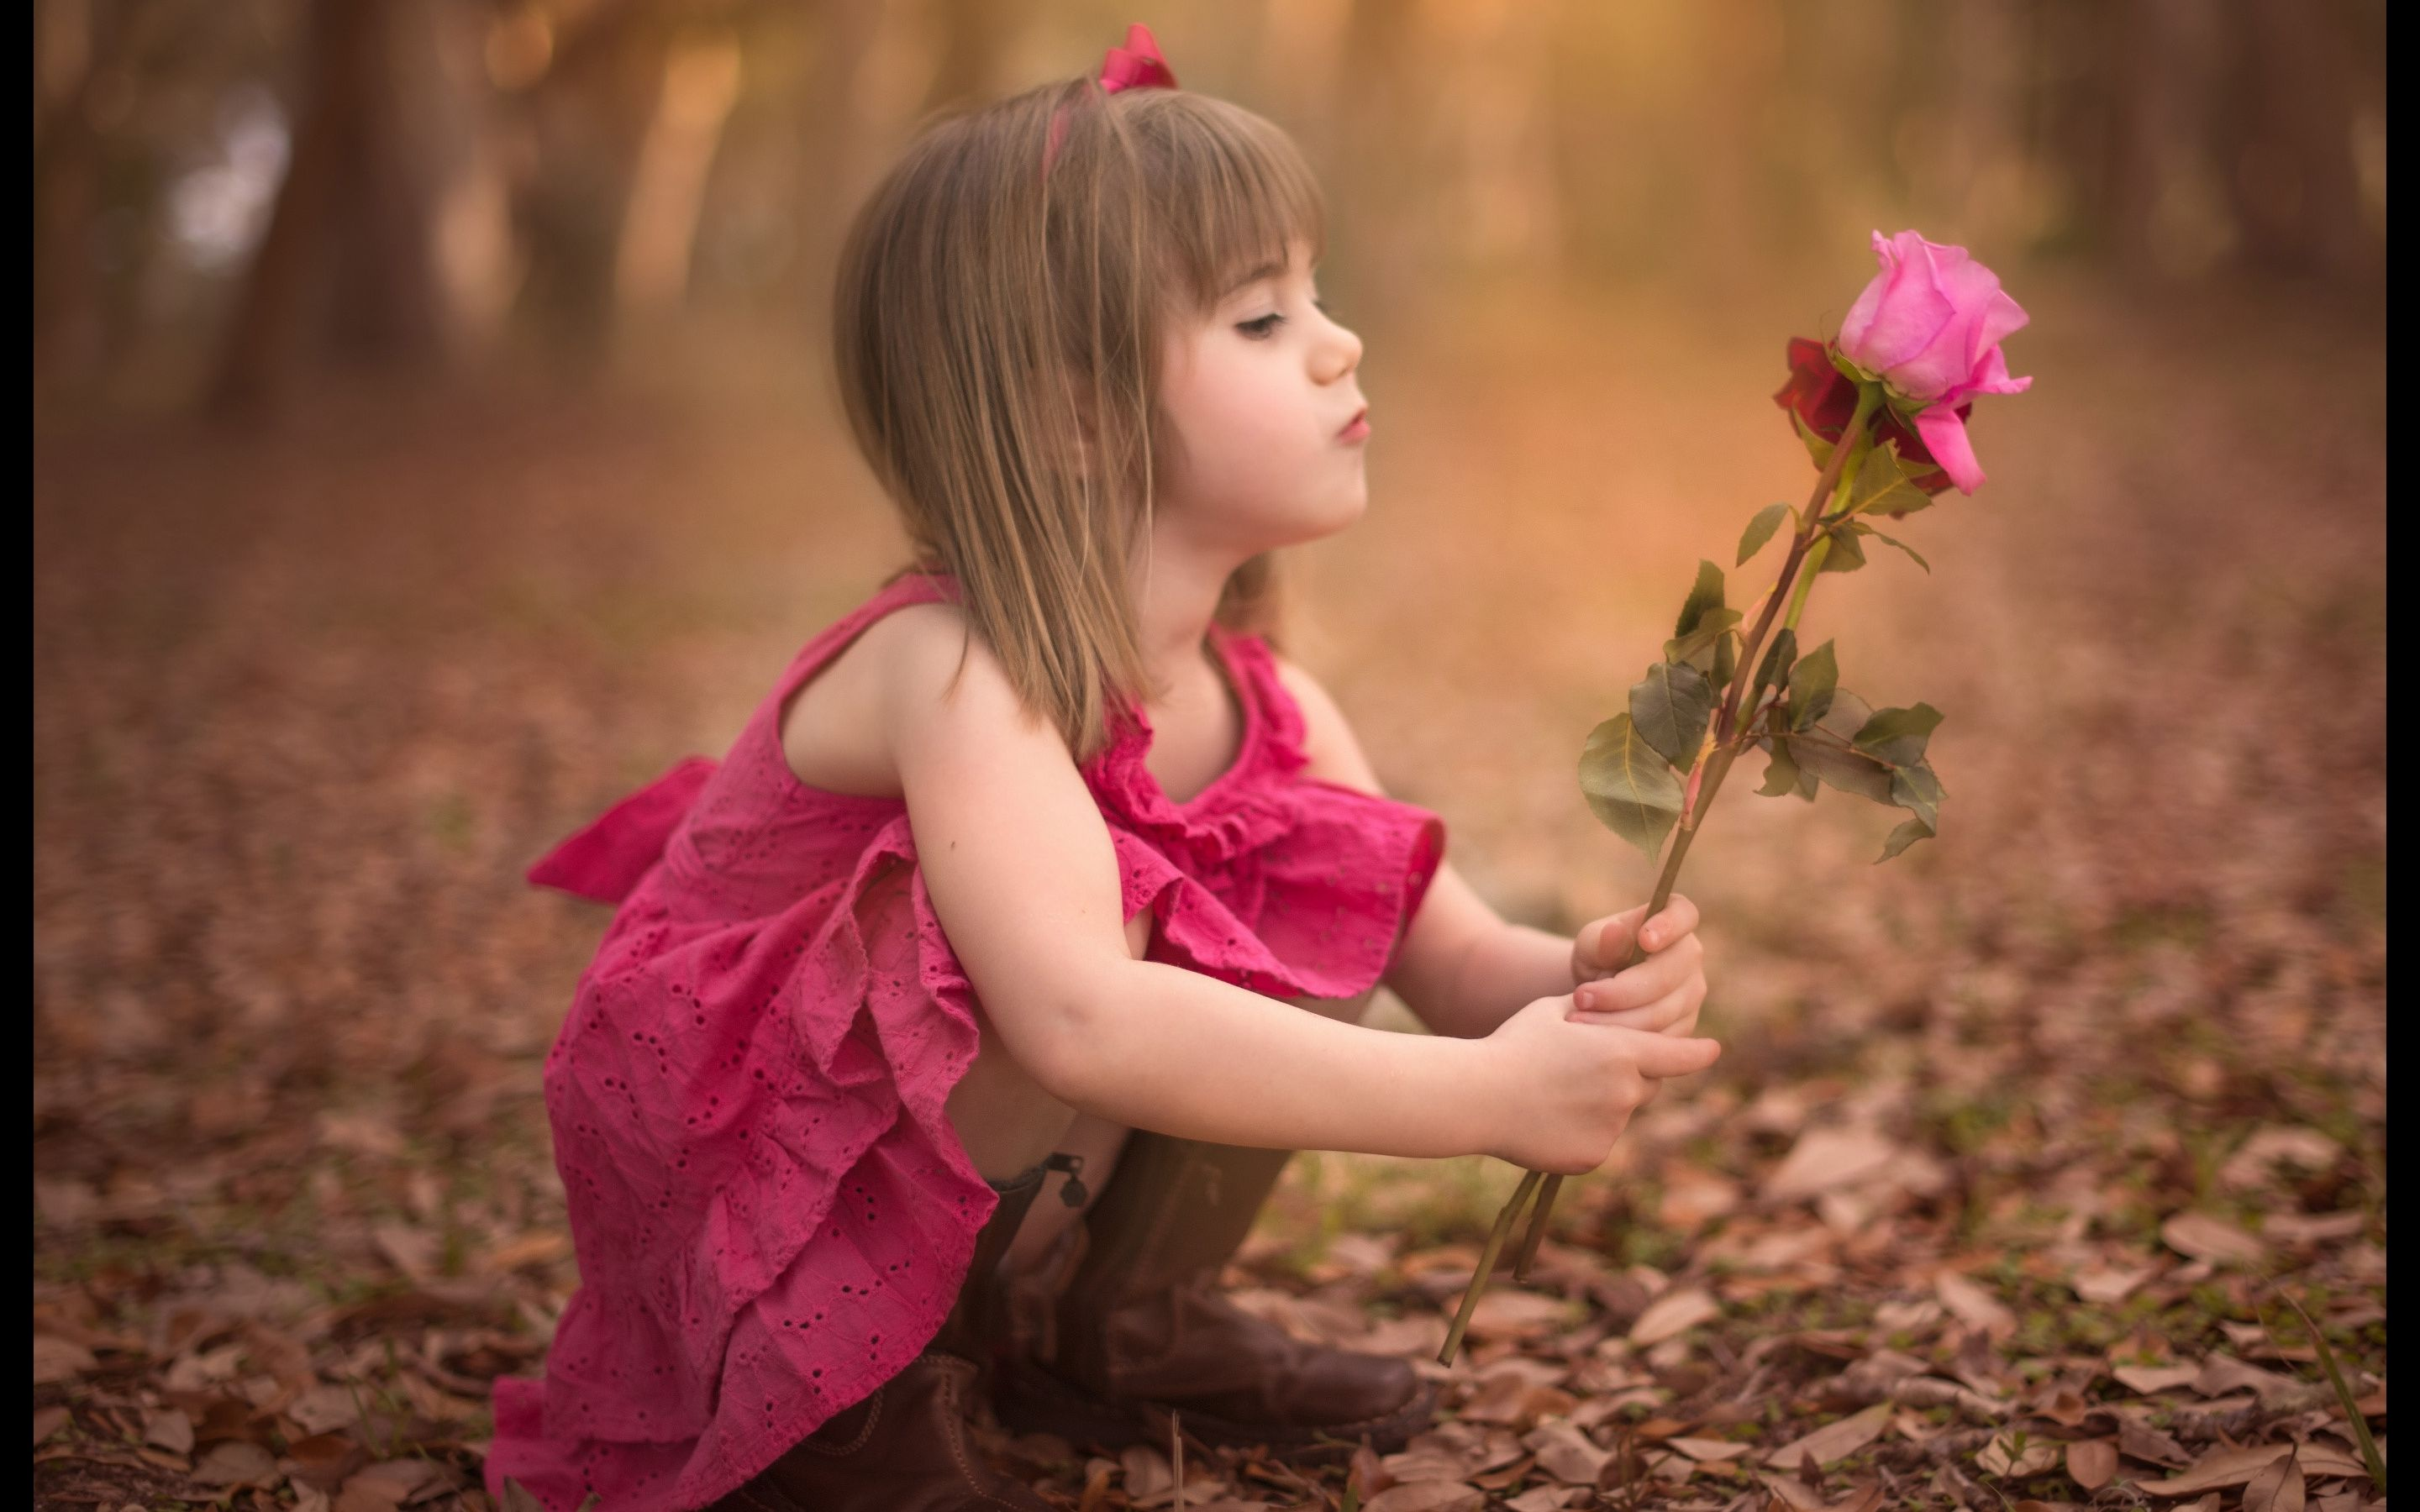 beautiful girl baby #95824, beautiful | colorful pictures | so cute